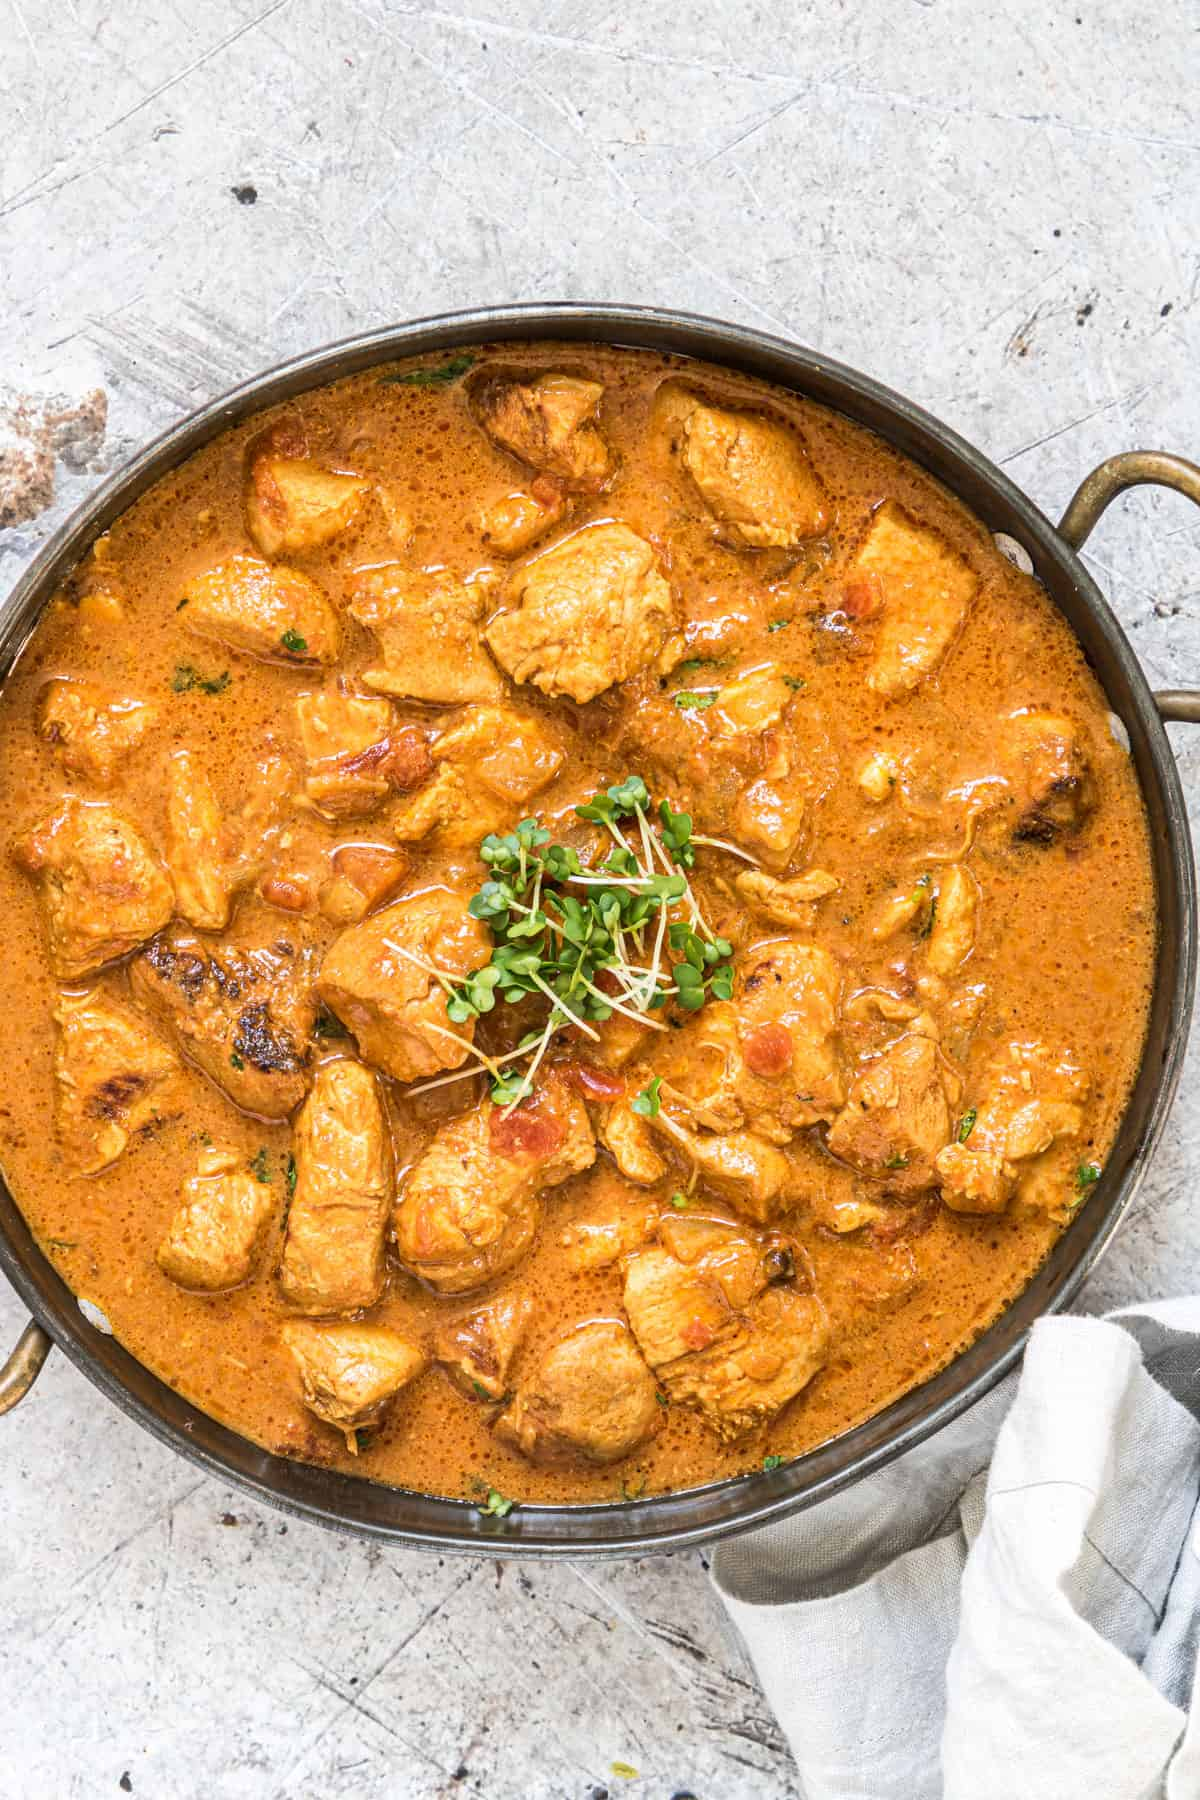 top down view of the completed instant pot chicken curry recipe